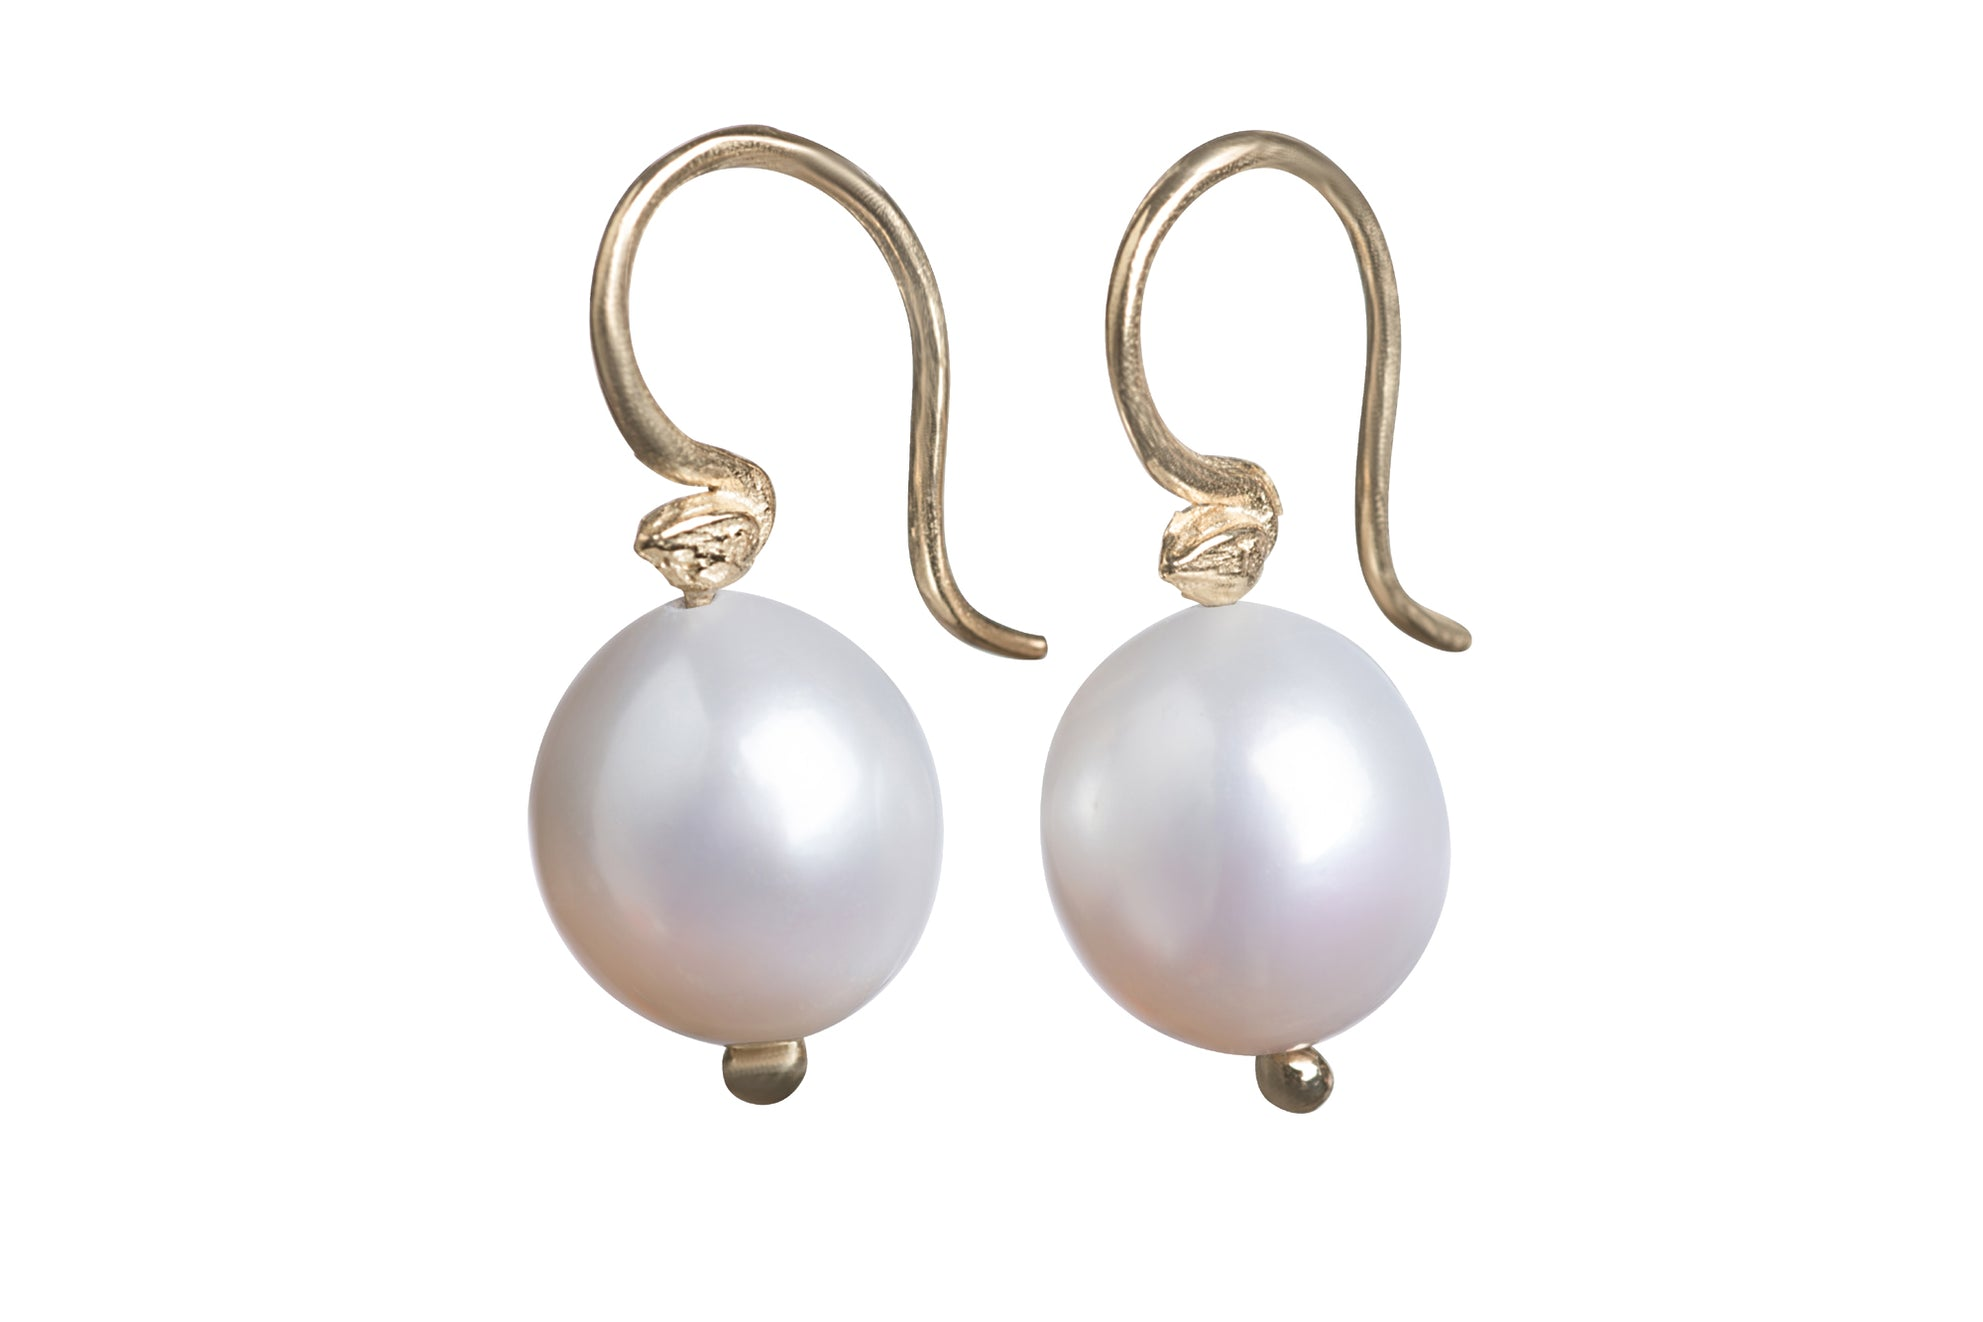 gold with earrings pearl post dots view by designer back jewelry mm stagni earring single de nektar freshwater of cultured